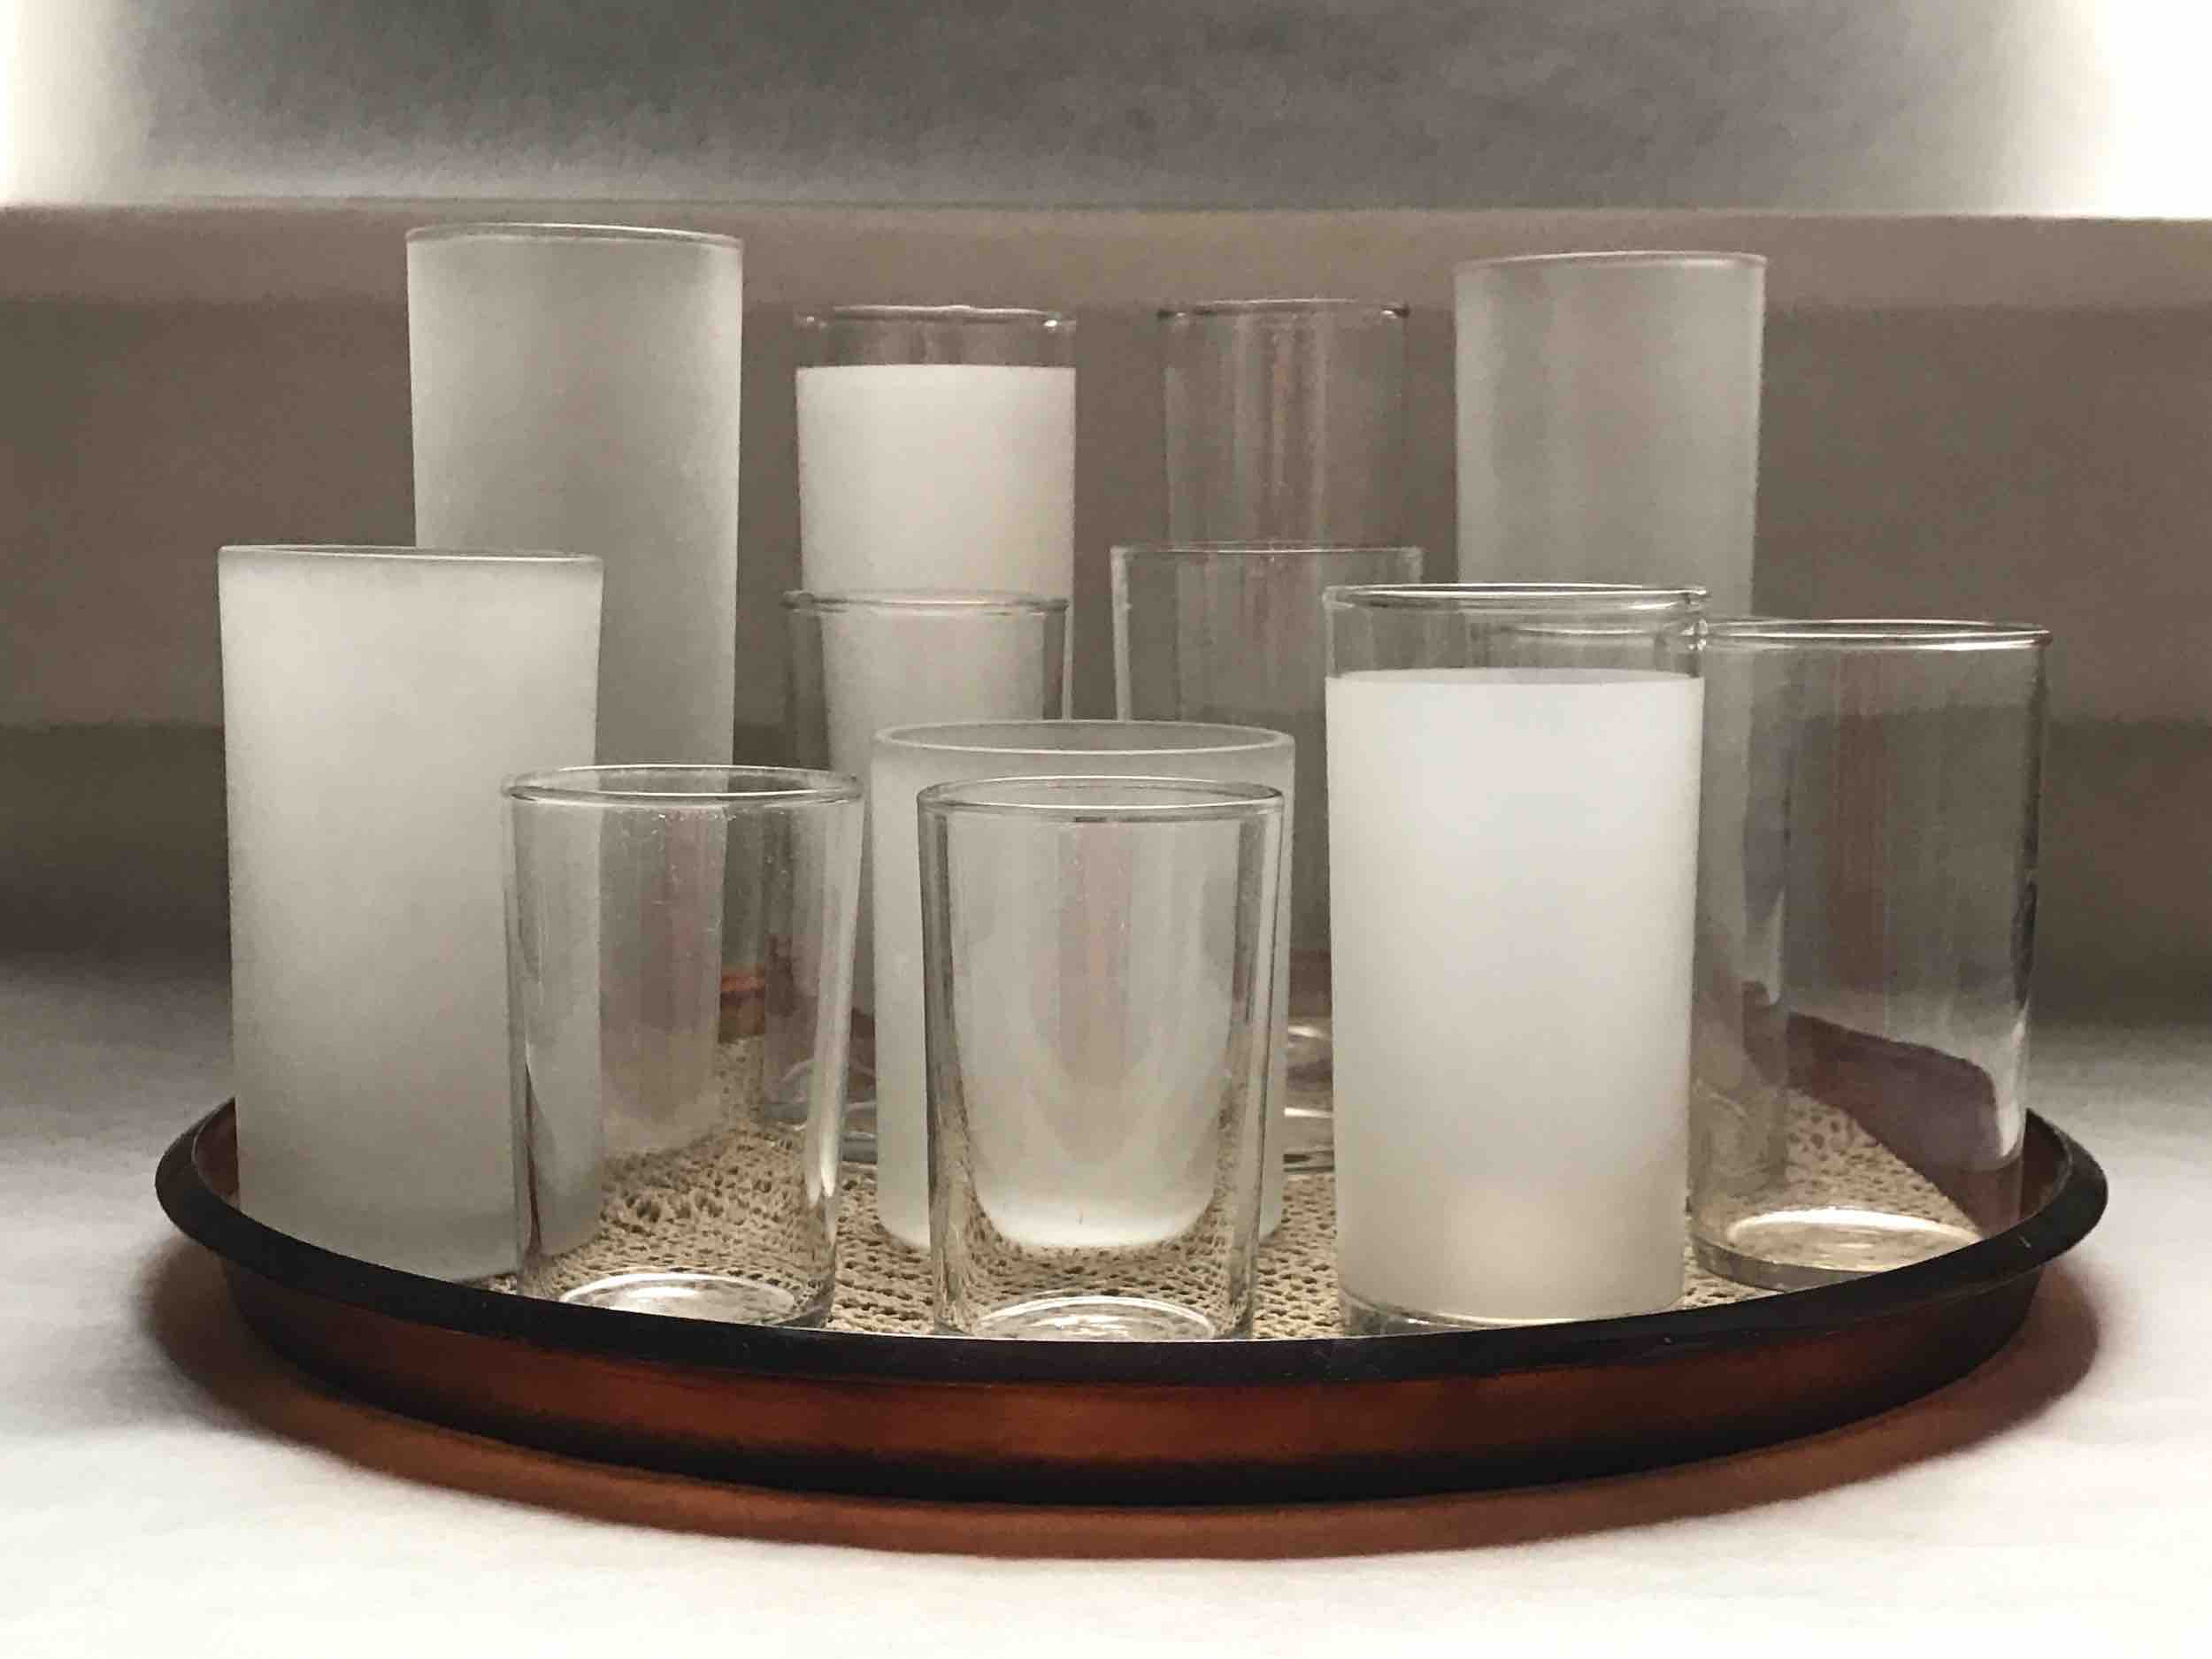 "#24: Twelve assorted Collins glasses glasses on tortoiseshell plastic tray lined with no-slip latex. 7.5"" x 12"""